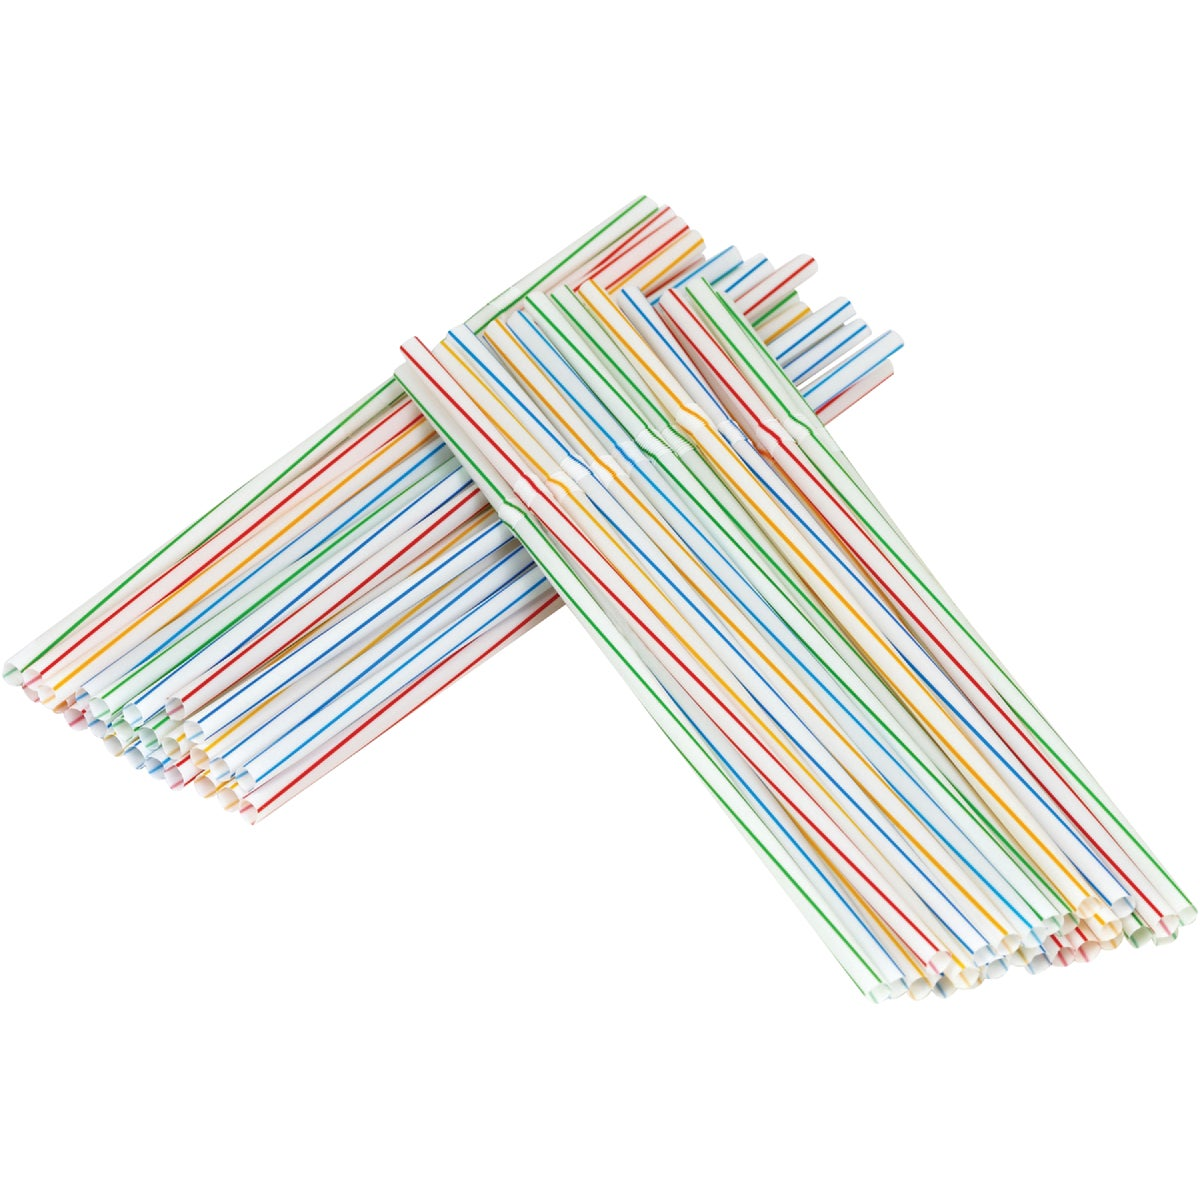 50PC FLEX NECK STRAWS - 1094975 by World Kitchen  Ekco